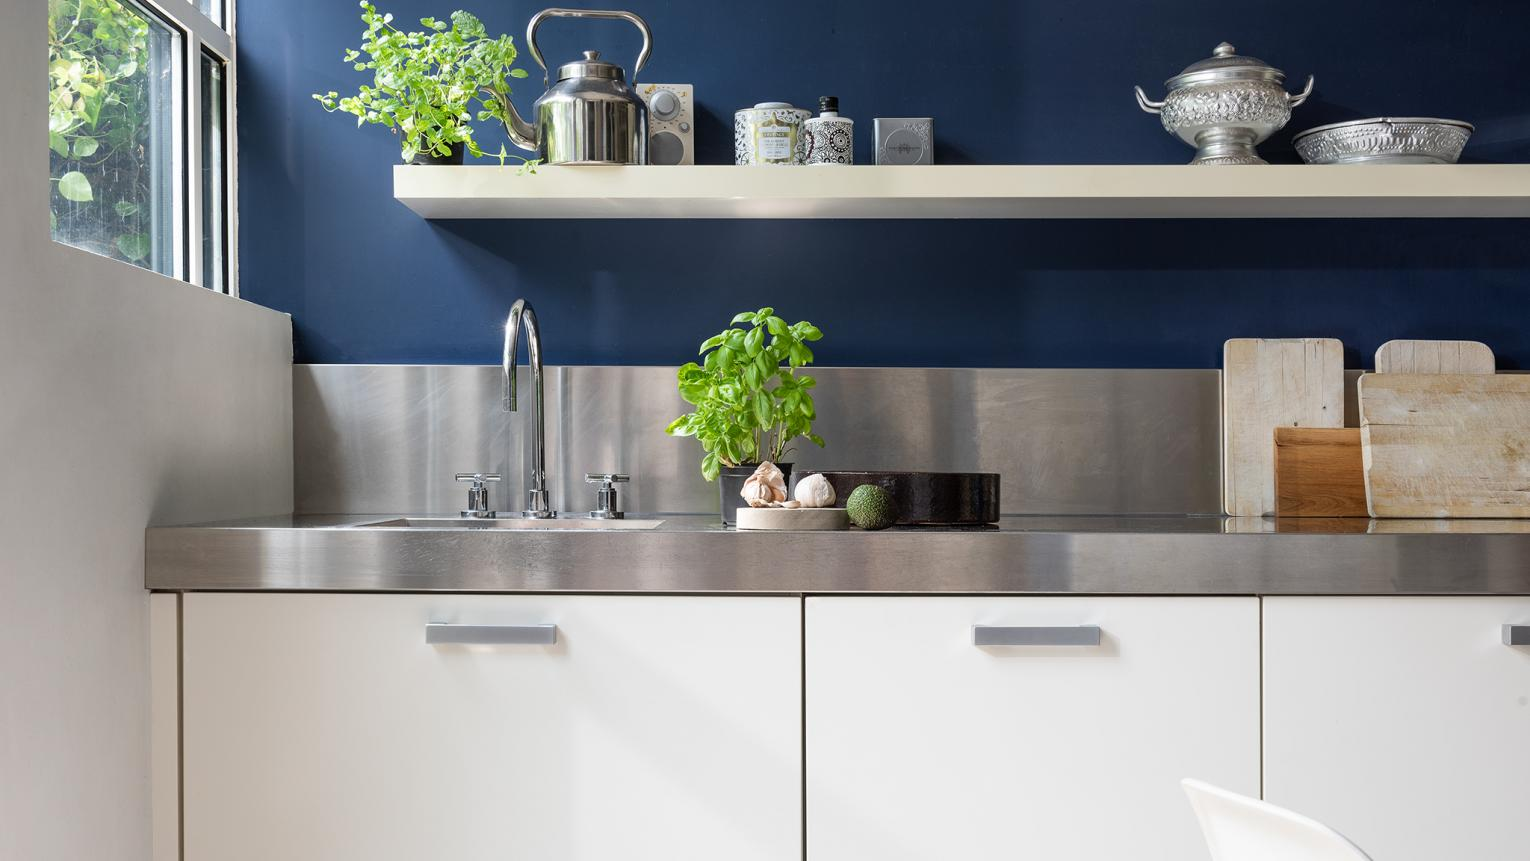 dulux-simply-refresh-kitchen-cabinets-ideas-global-1